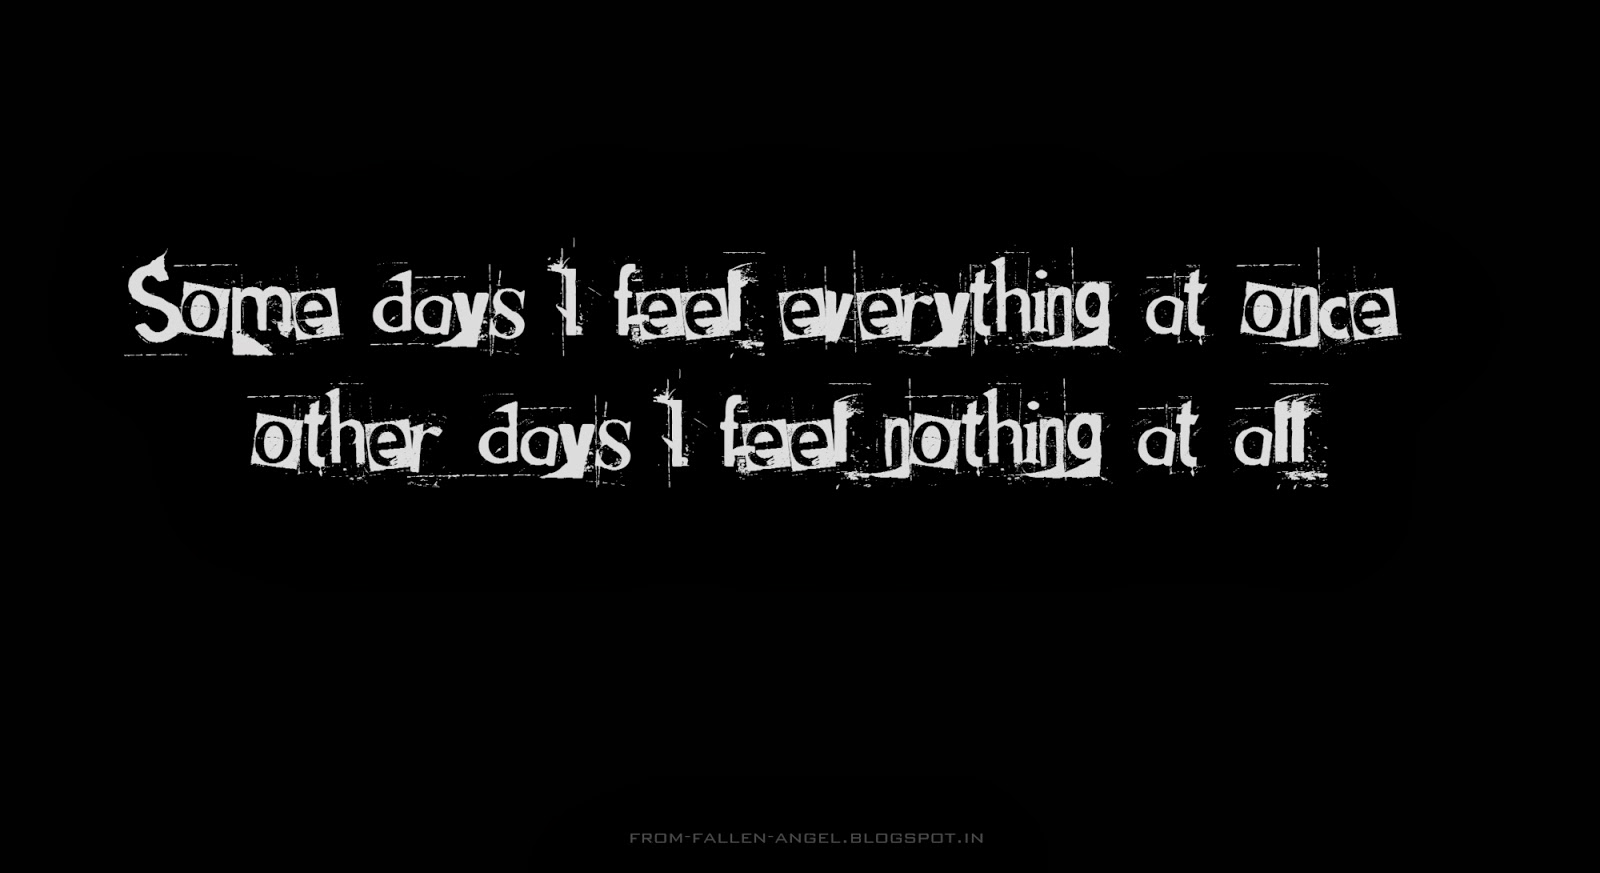 Some days I feel everything at once, other days I feel nothing at all.